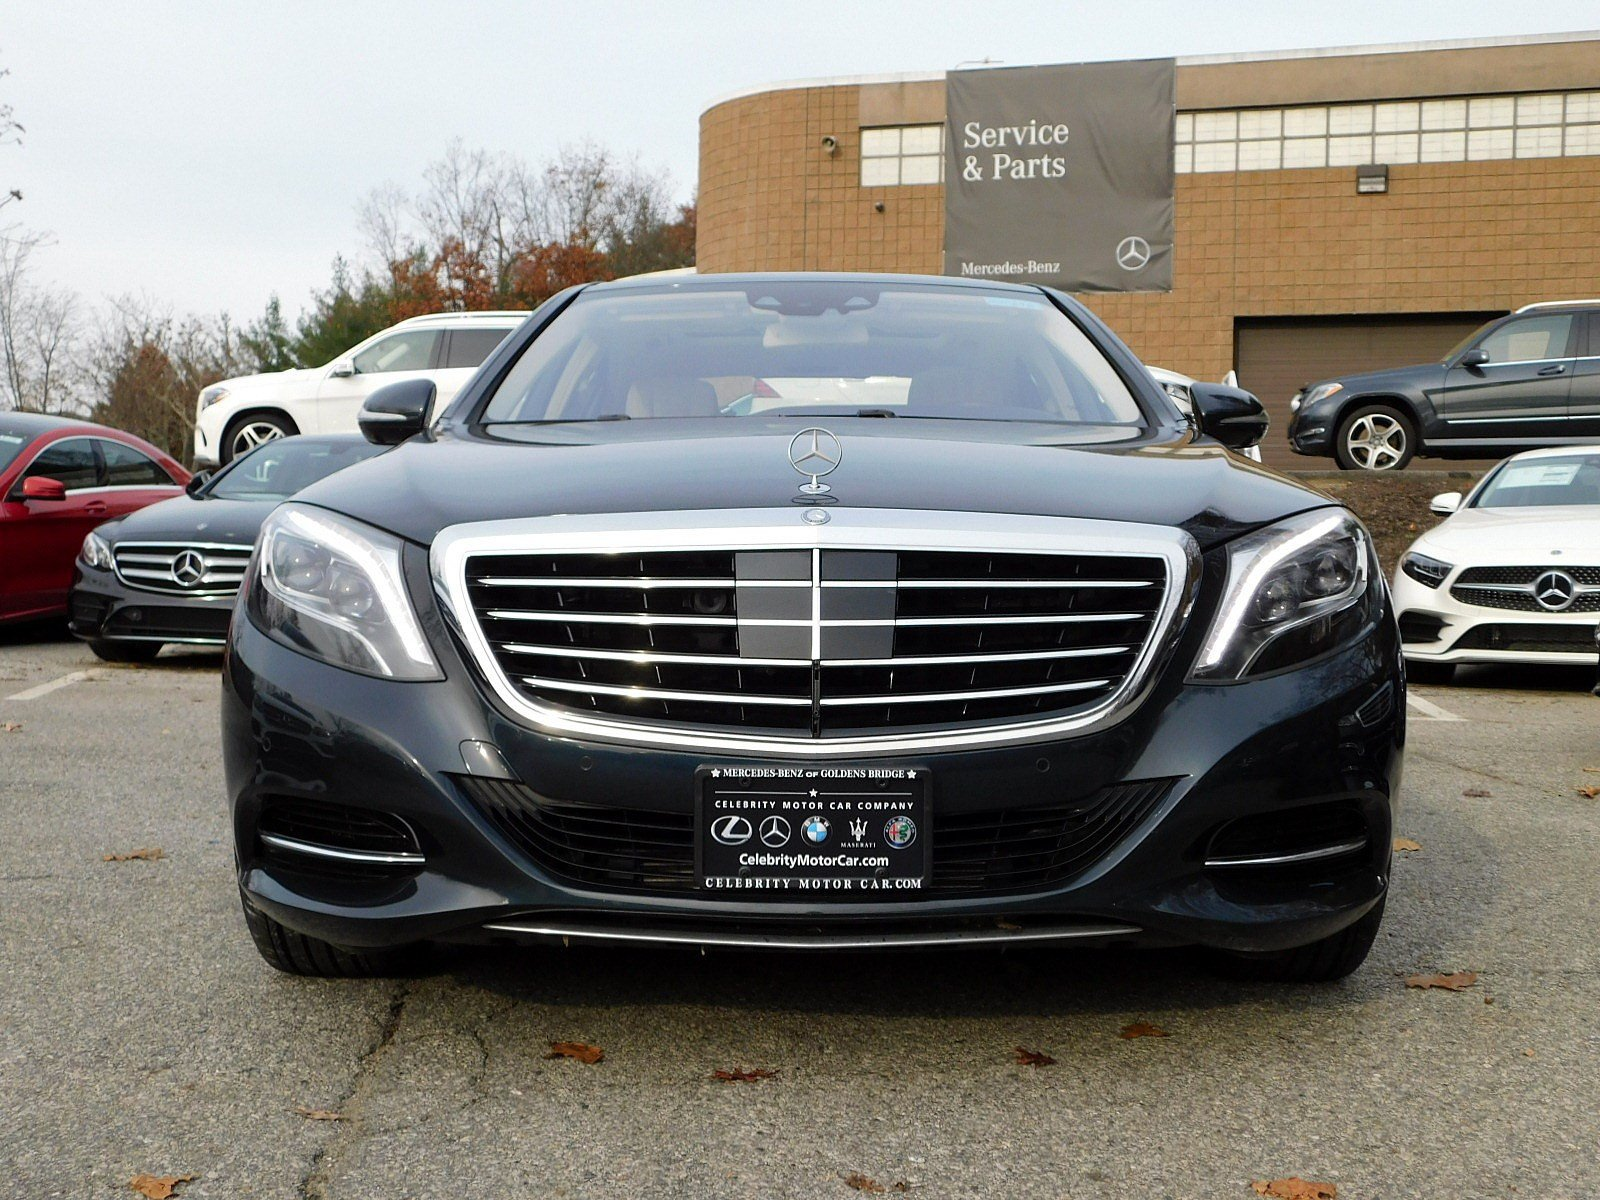 New 2015 Mercedes Benz S Class S 550 SEDAN in Goldens Bridge MBP696